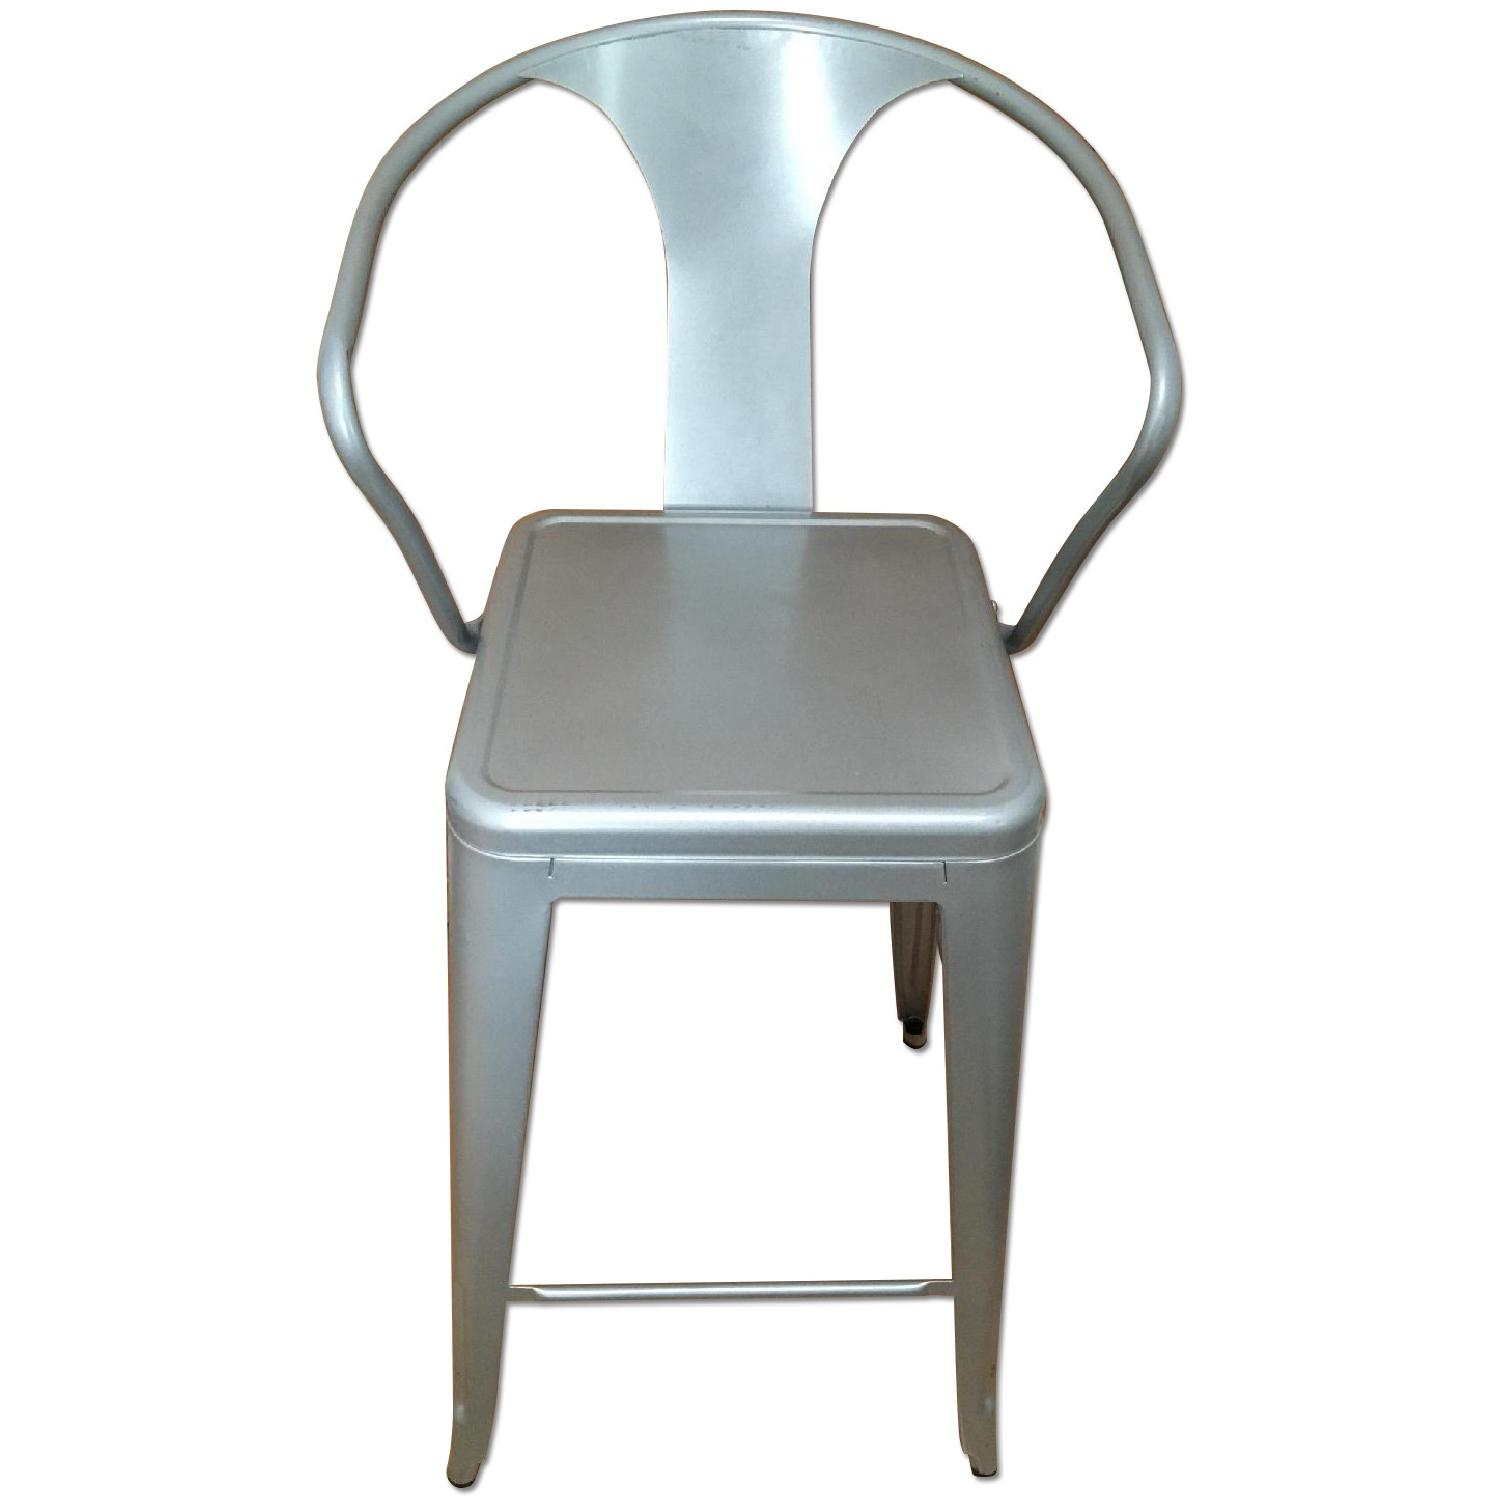 Silver Metal Bar Stools w/ Backrest